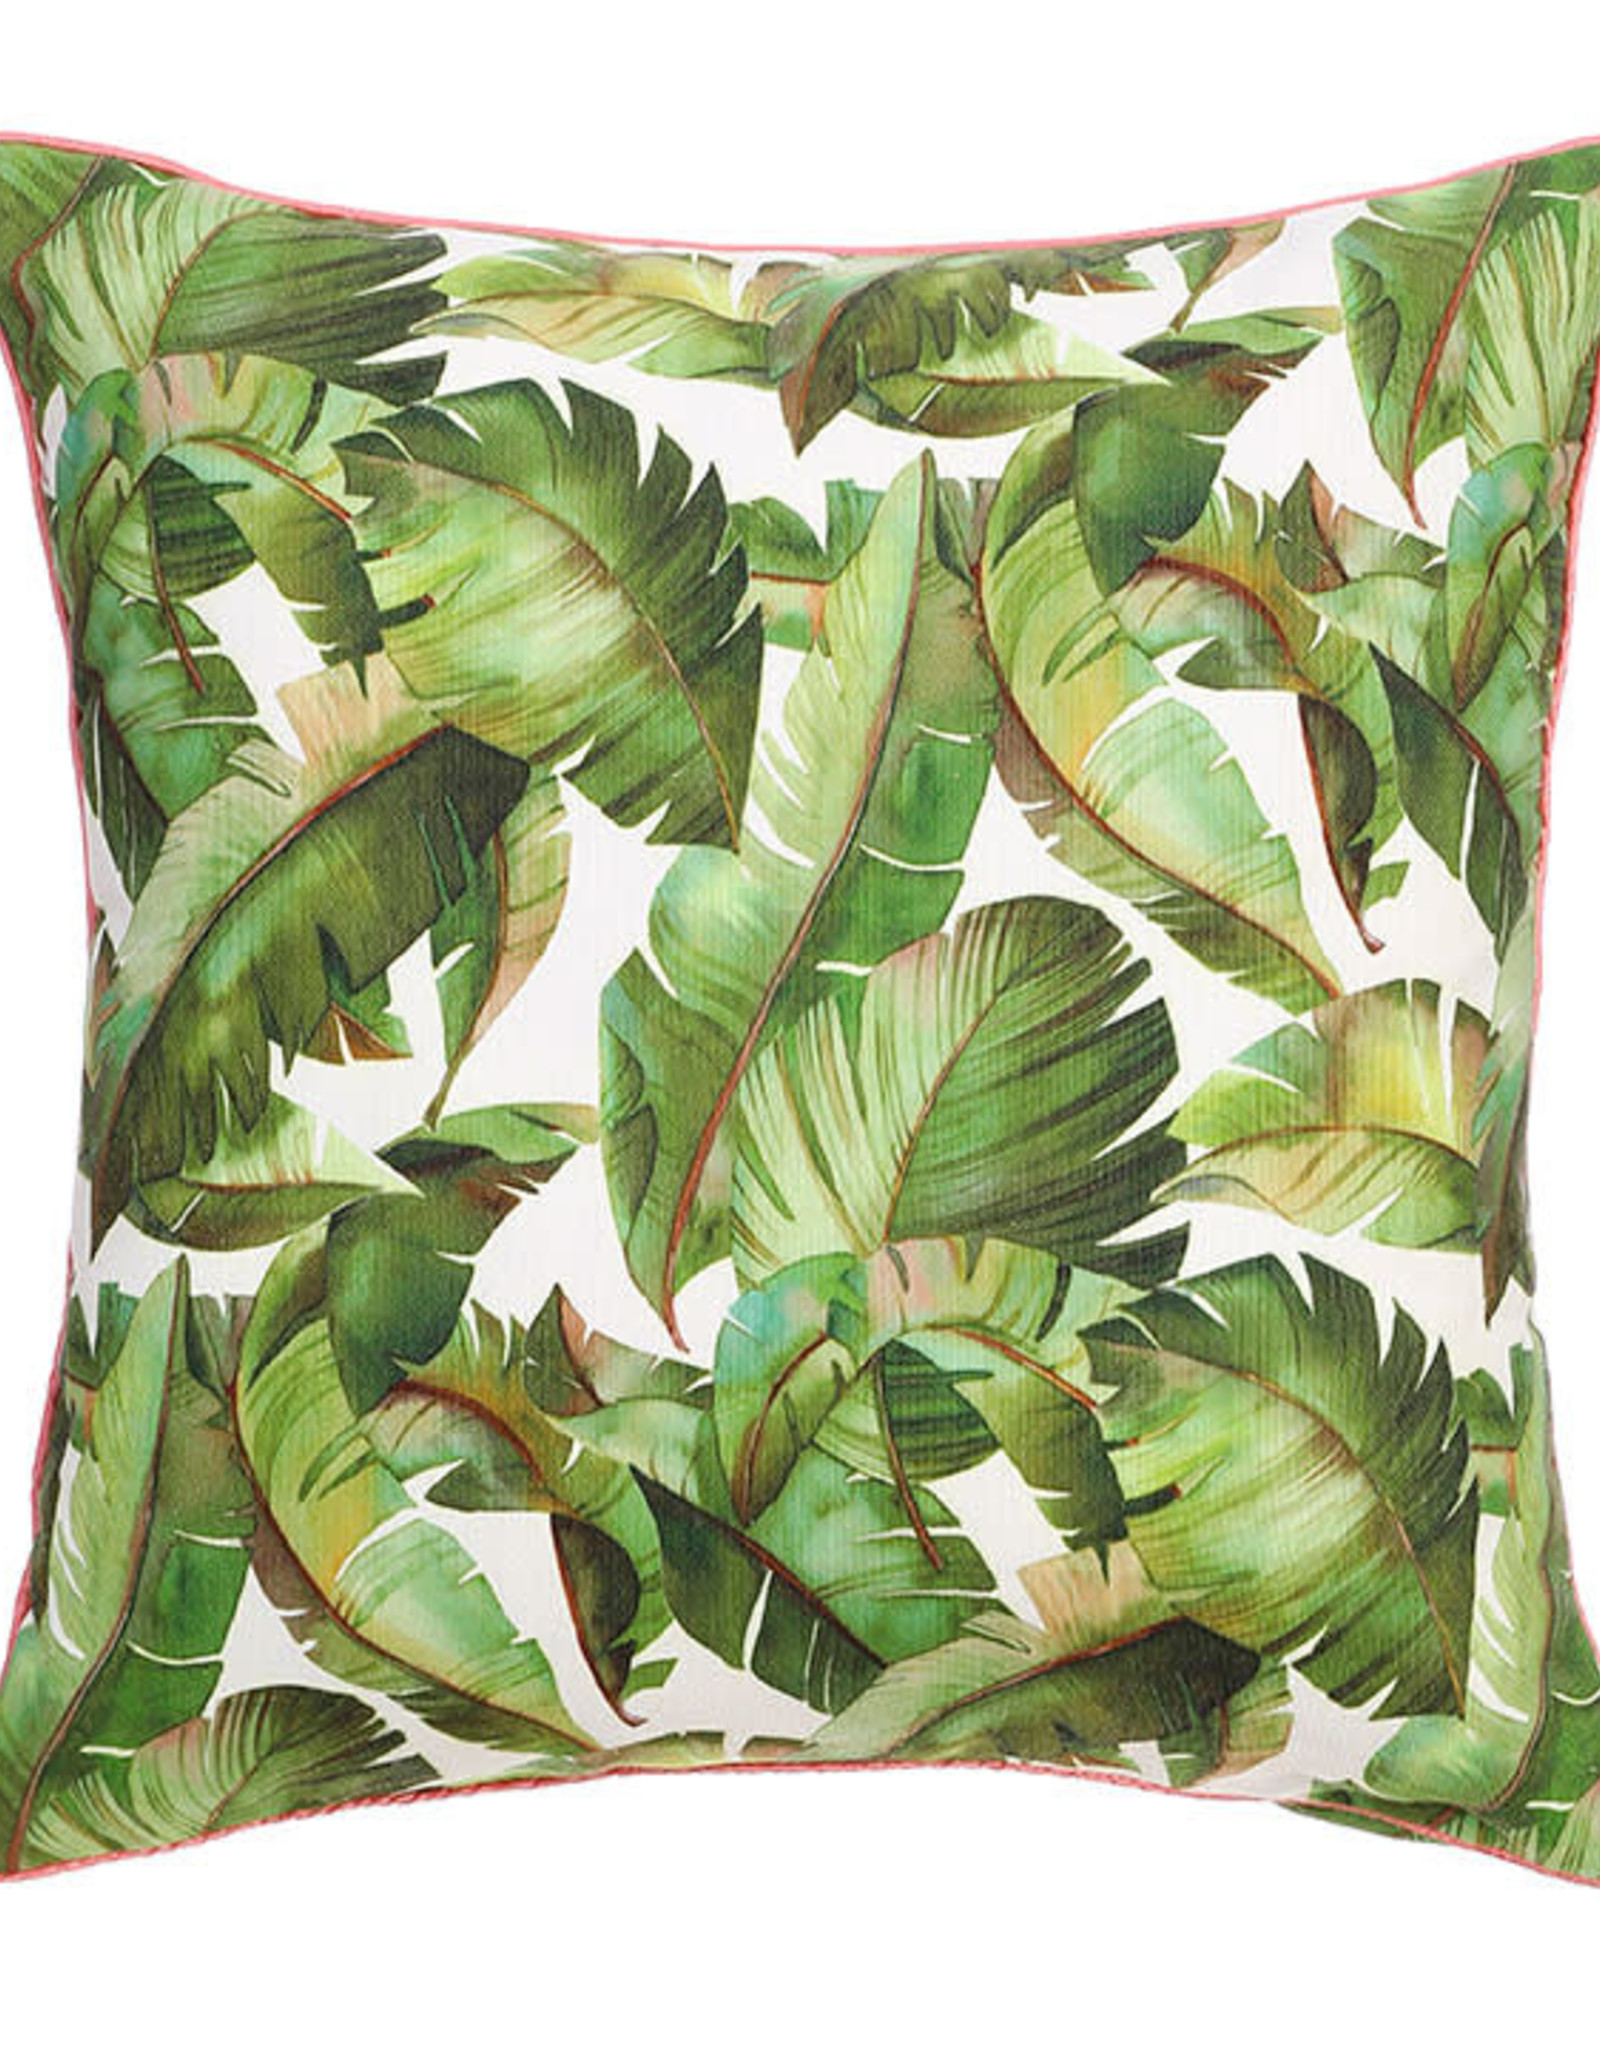 Raz Banana Leaf Pillow